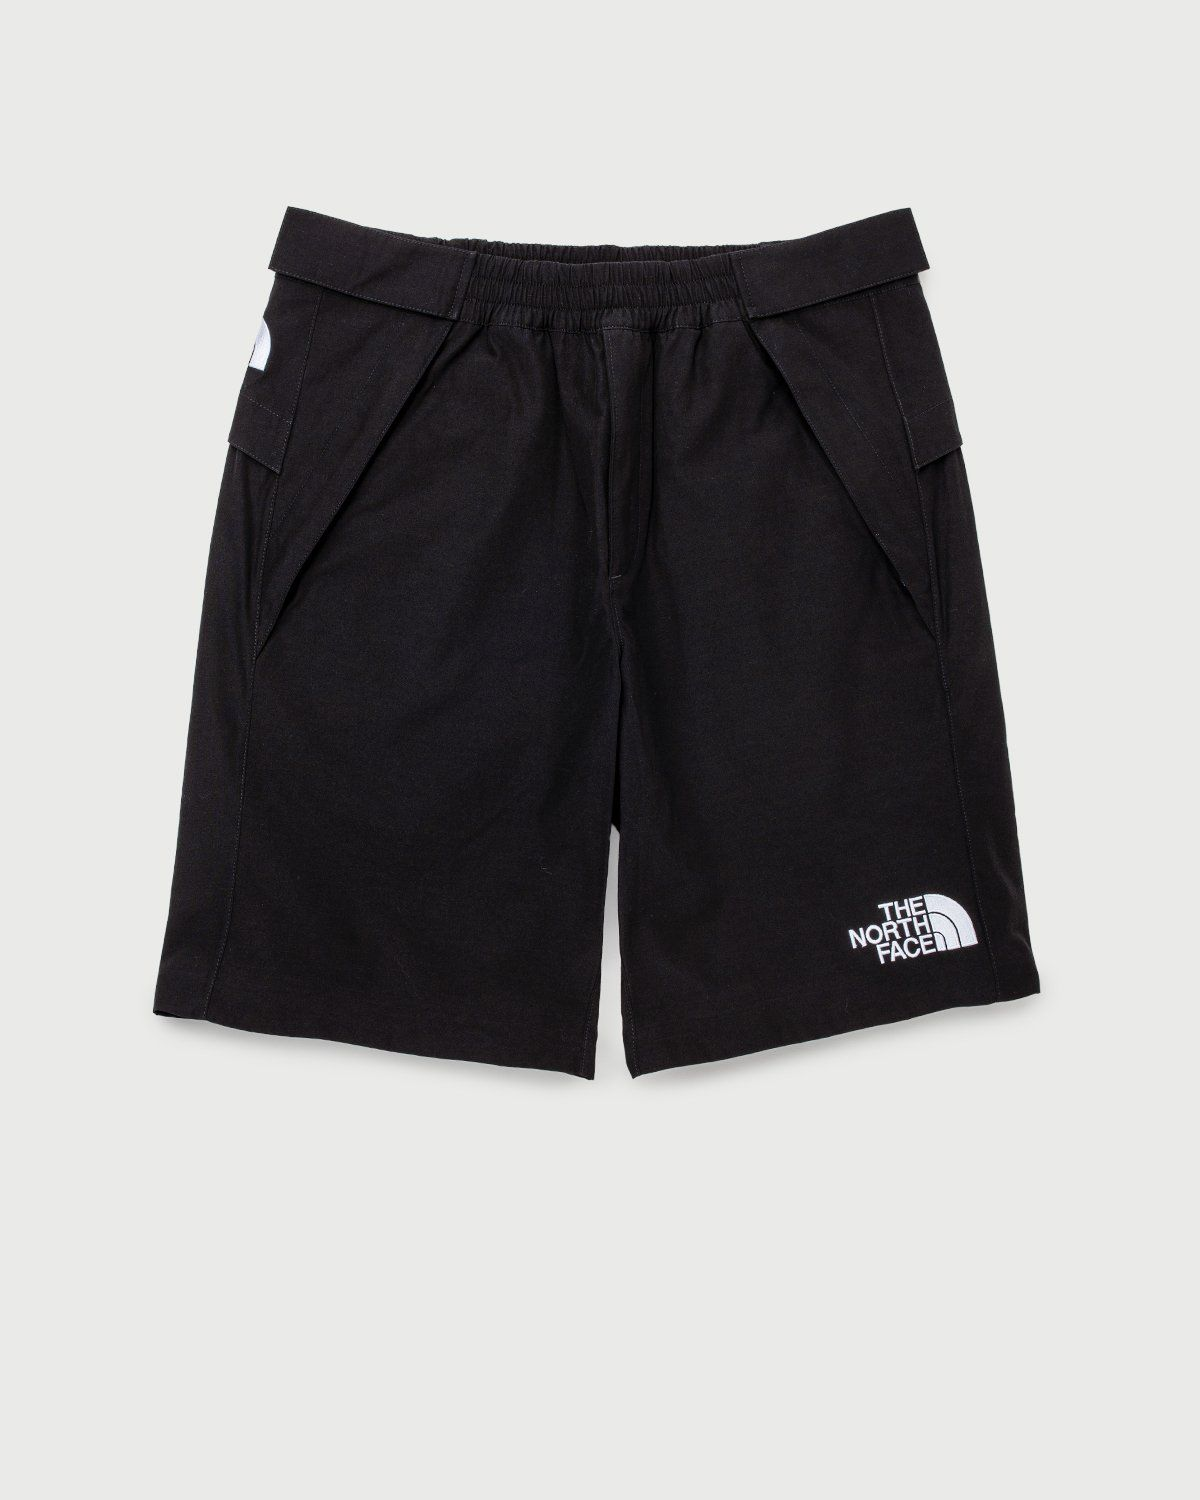 The North Face Black Series - Spectra® Shorts Black - Image 1